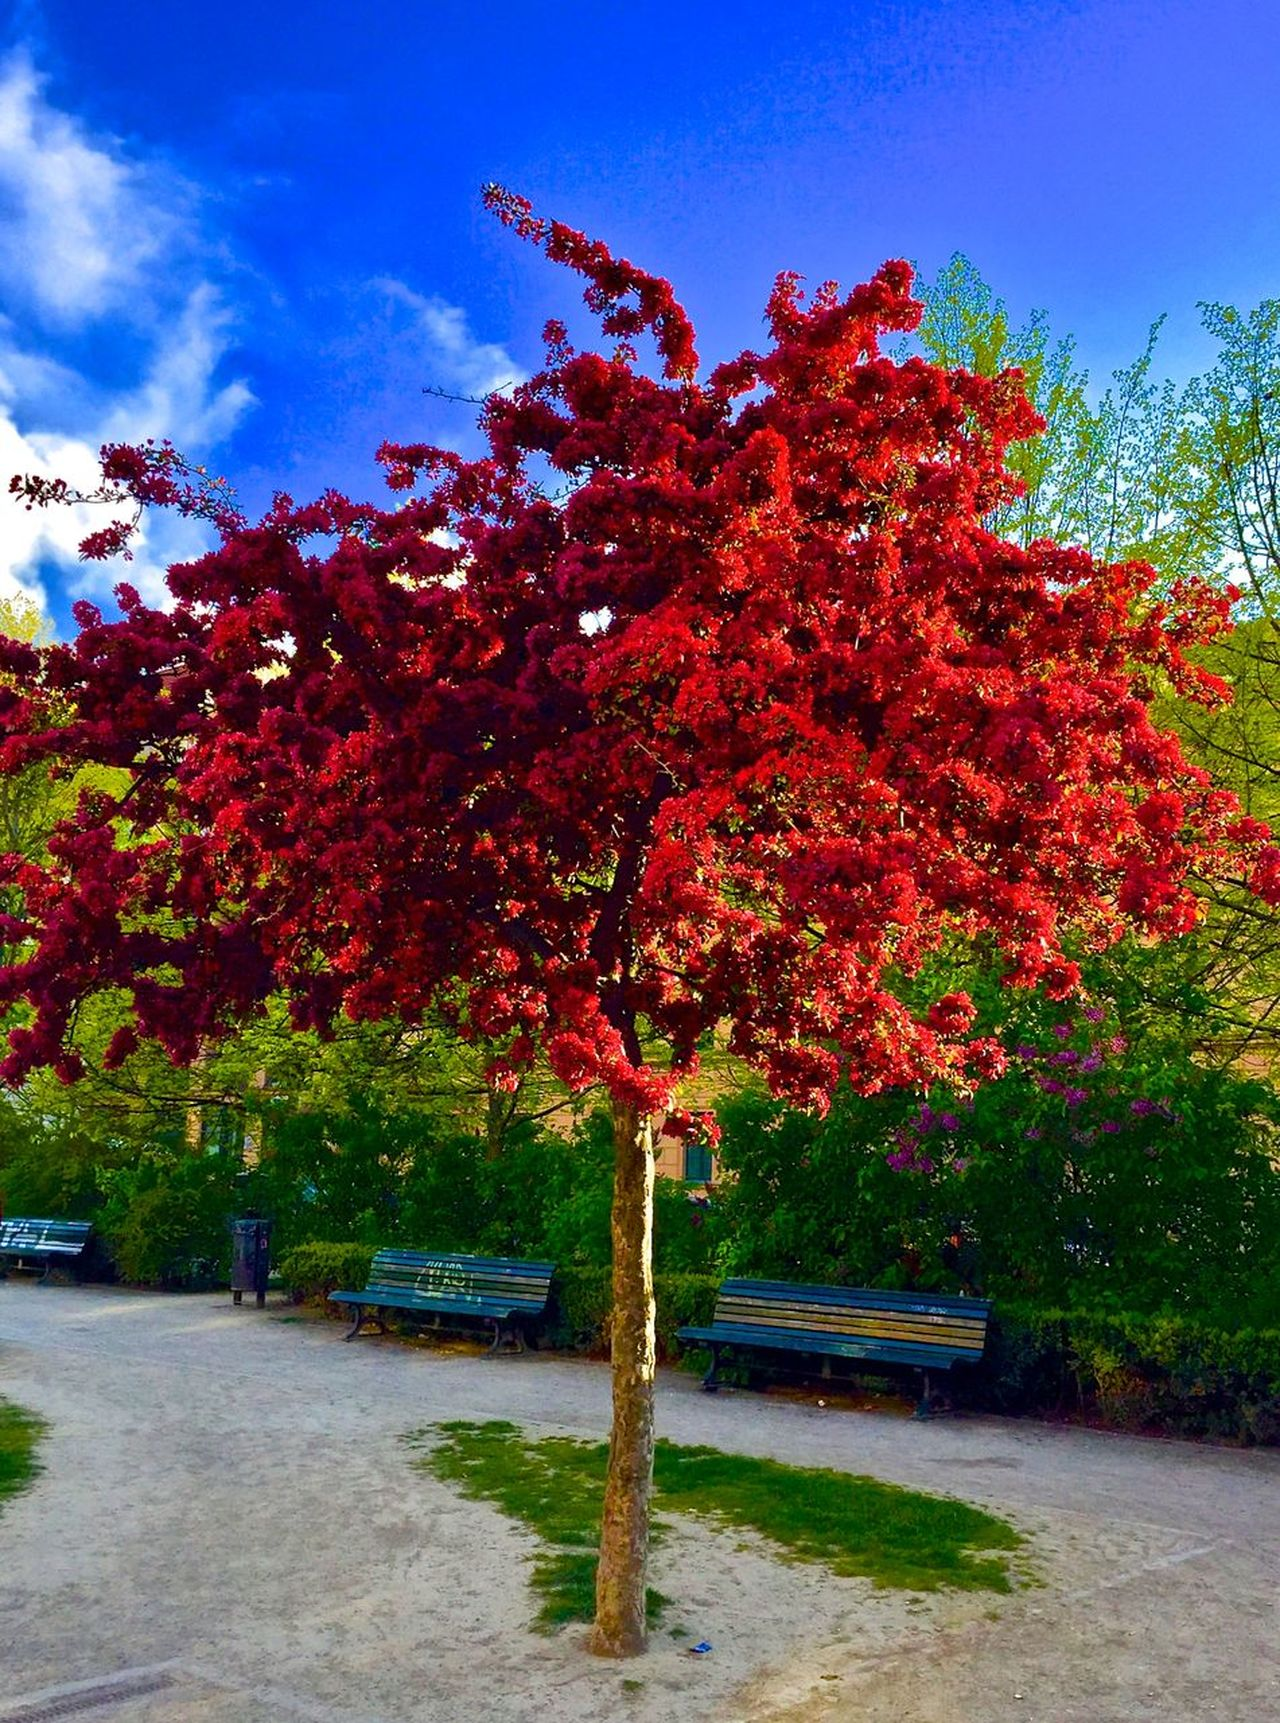 Autumn Beauty In Nature Change City Park City Trees Day Growth Nature No People Outdoors Outstanding Beauty Park - Man Made Space Red Sky Spring Stand Alone Beauty Tranquility Tree Backgrounds